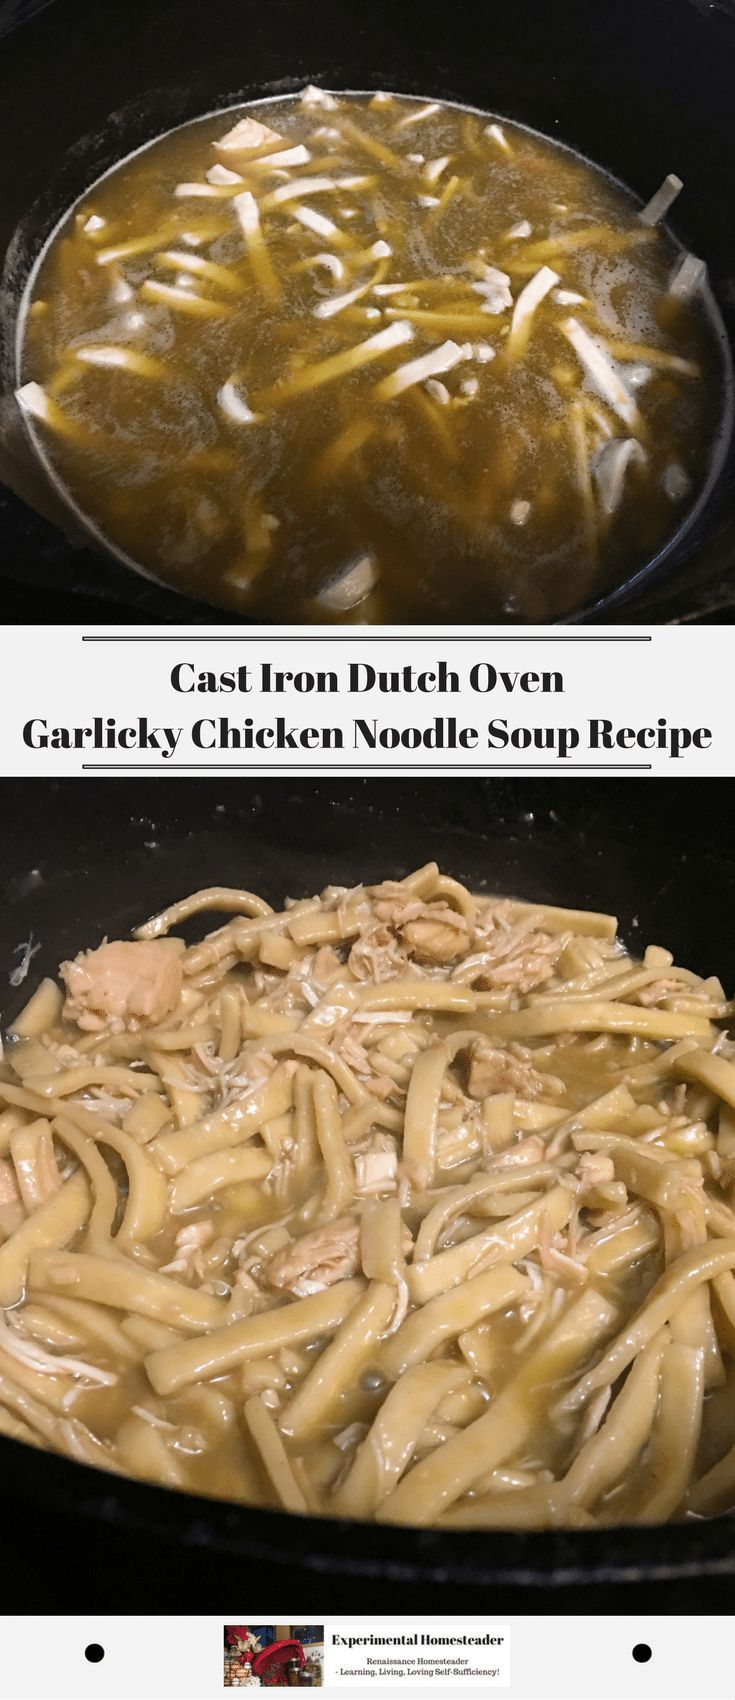 This is simply the best chicken noodle soup recipe. It is quick recipe that is easy to make in a cast iron dutch oven on a stove or over an open fire. #bestchickennoodlesoup #castirondutchoven #castironcooking #chickenrecipes #pastarecipes #quickeasyrecip